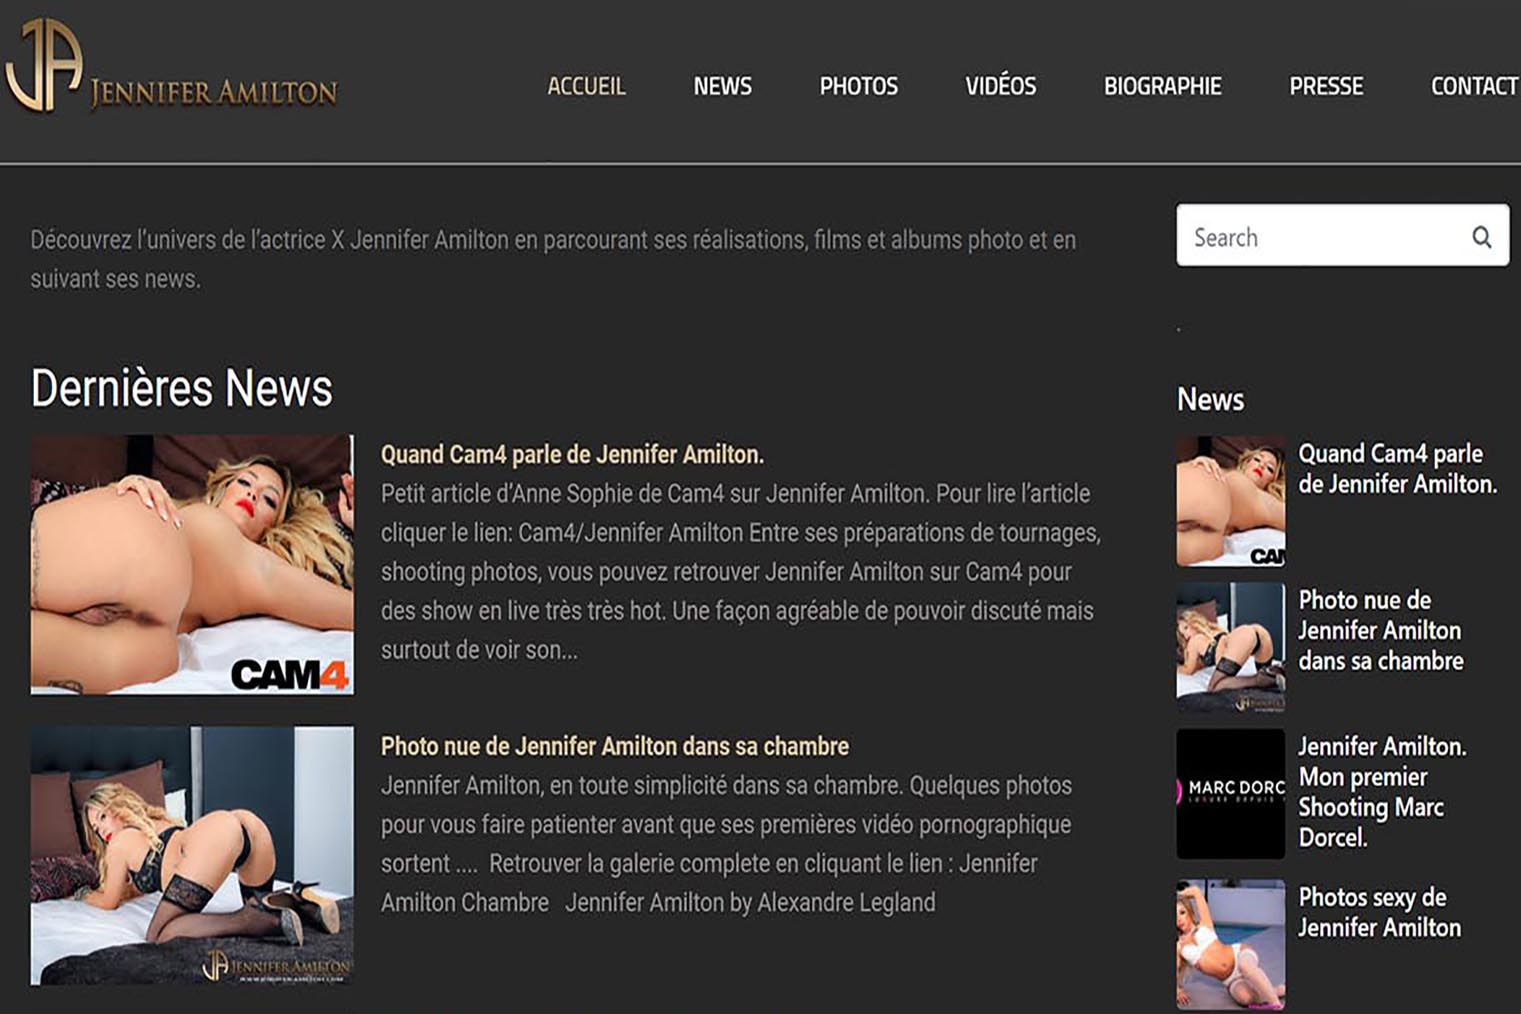 site officiel Jennifer Amilton